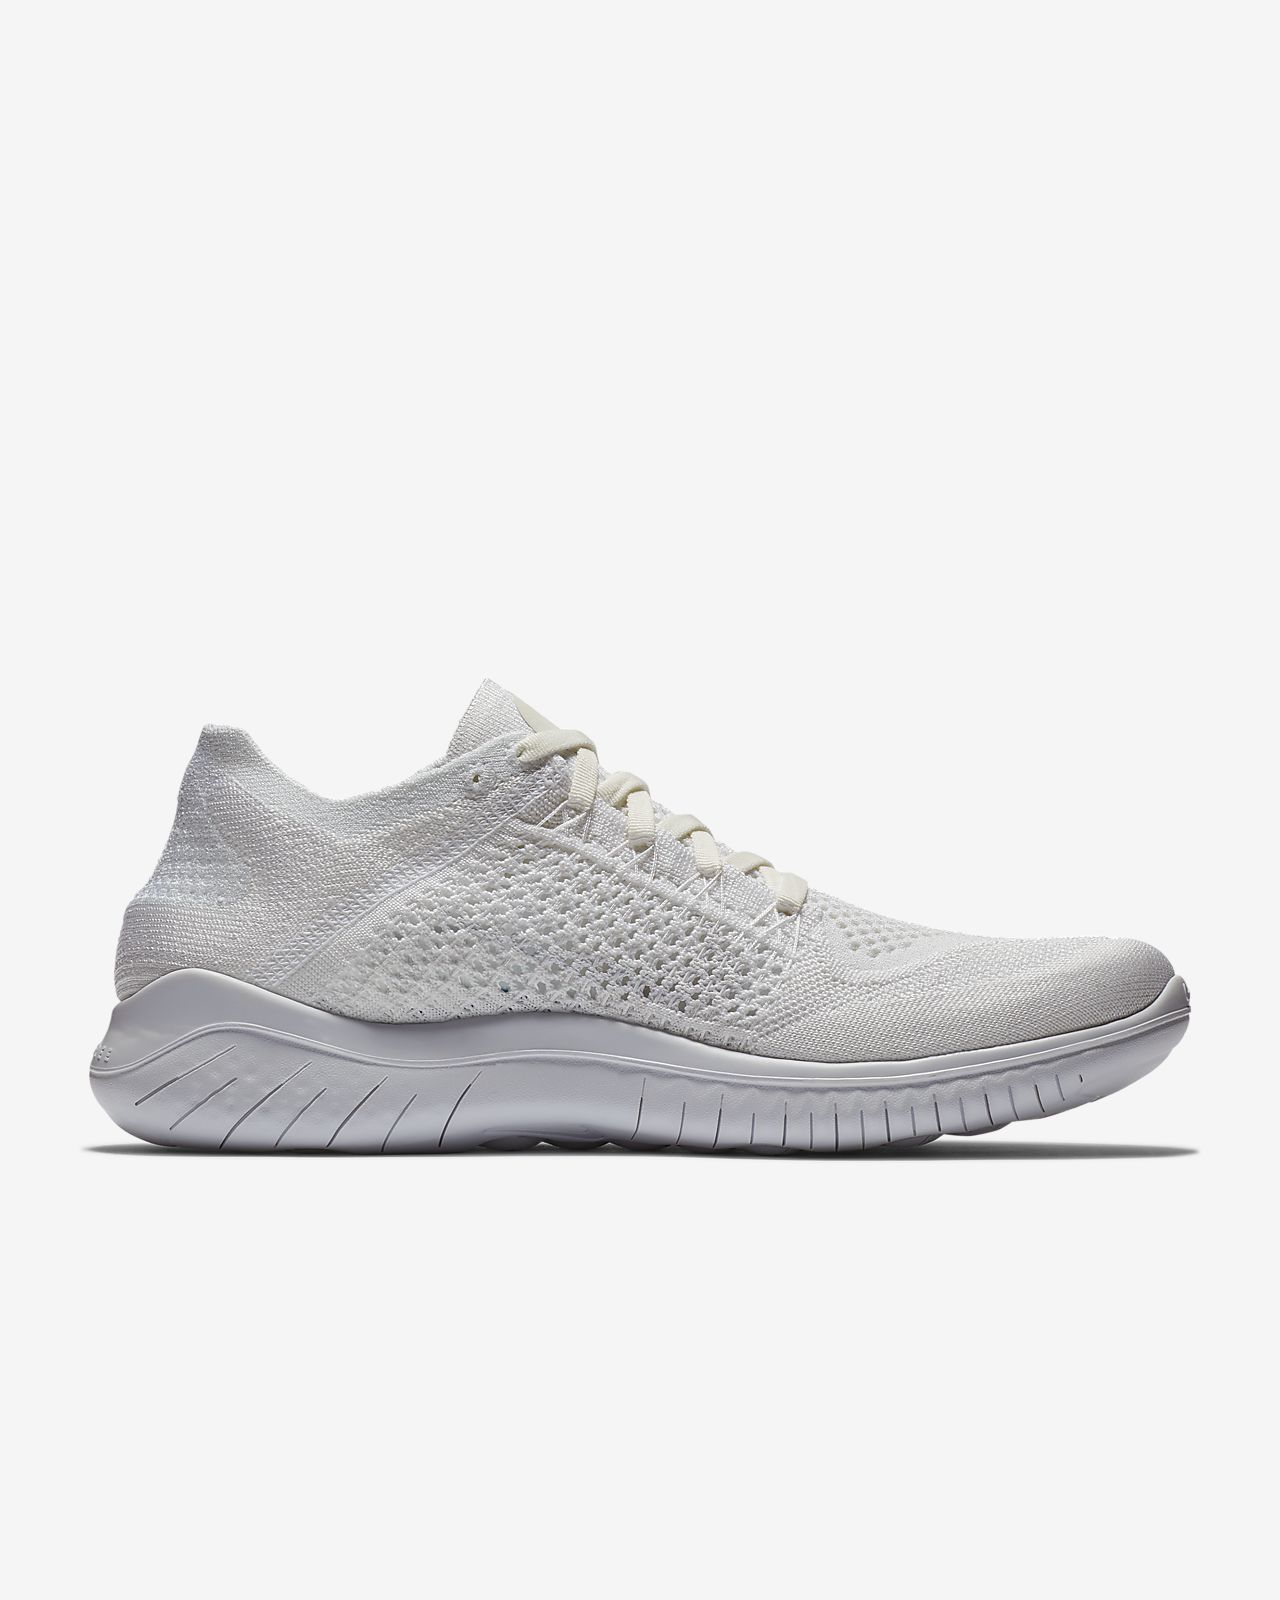 buy popular 7a116 899f9 ... Nike Free RN Flyknit 2018 Men s Running Shoe